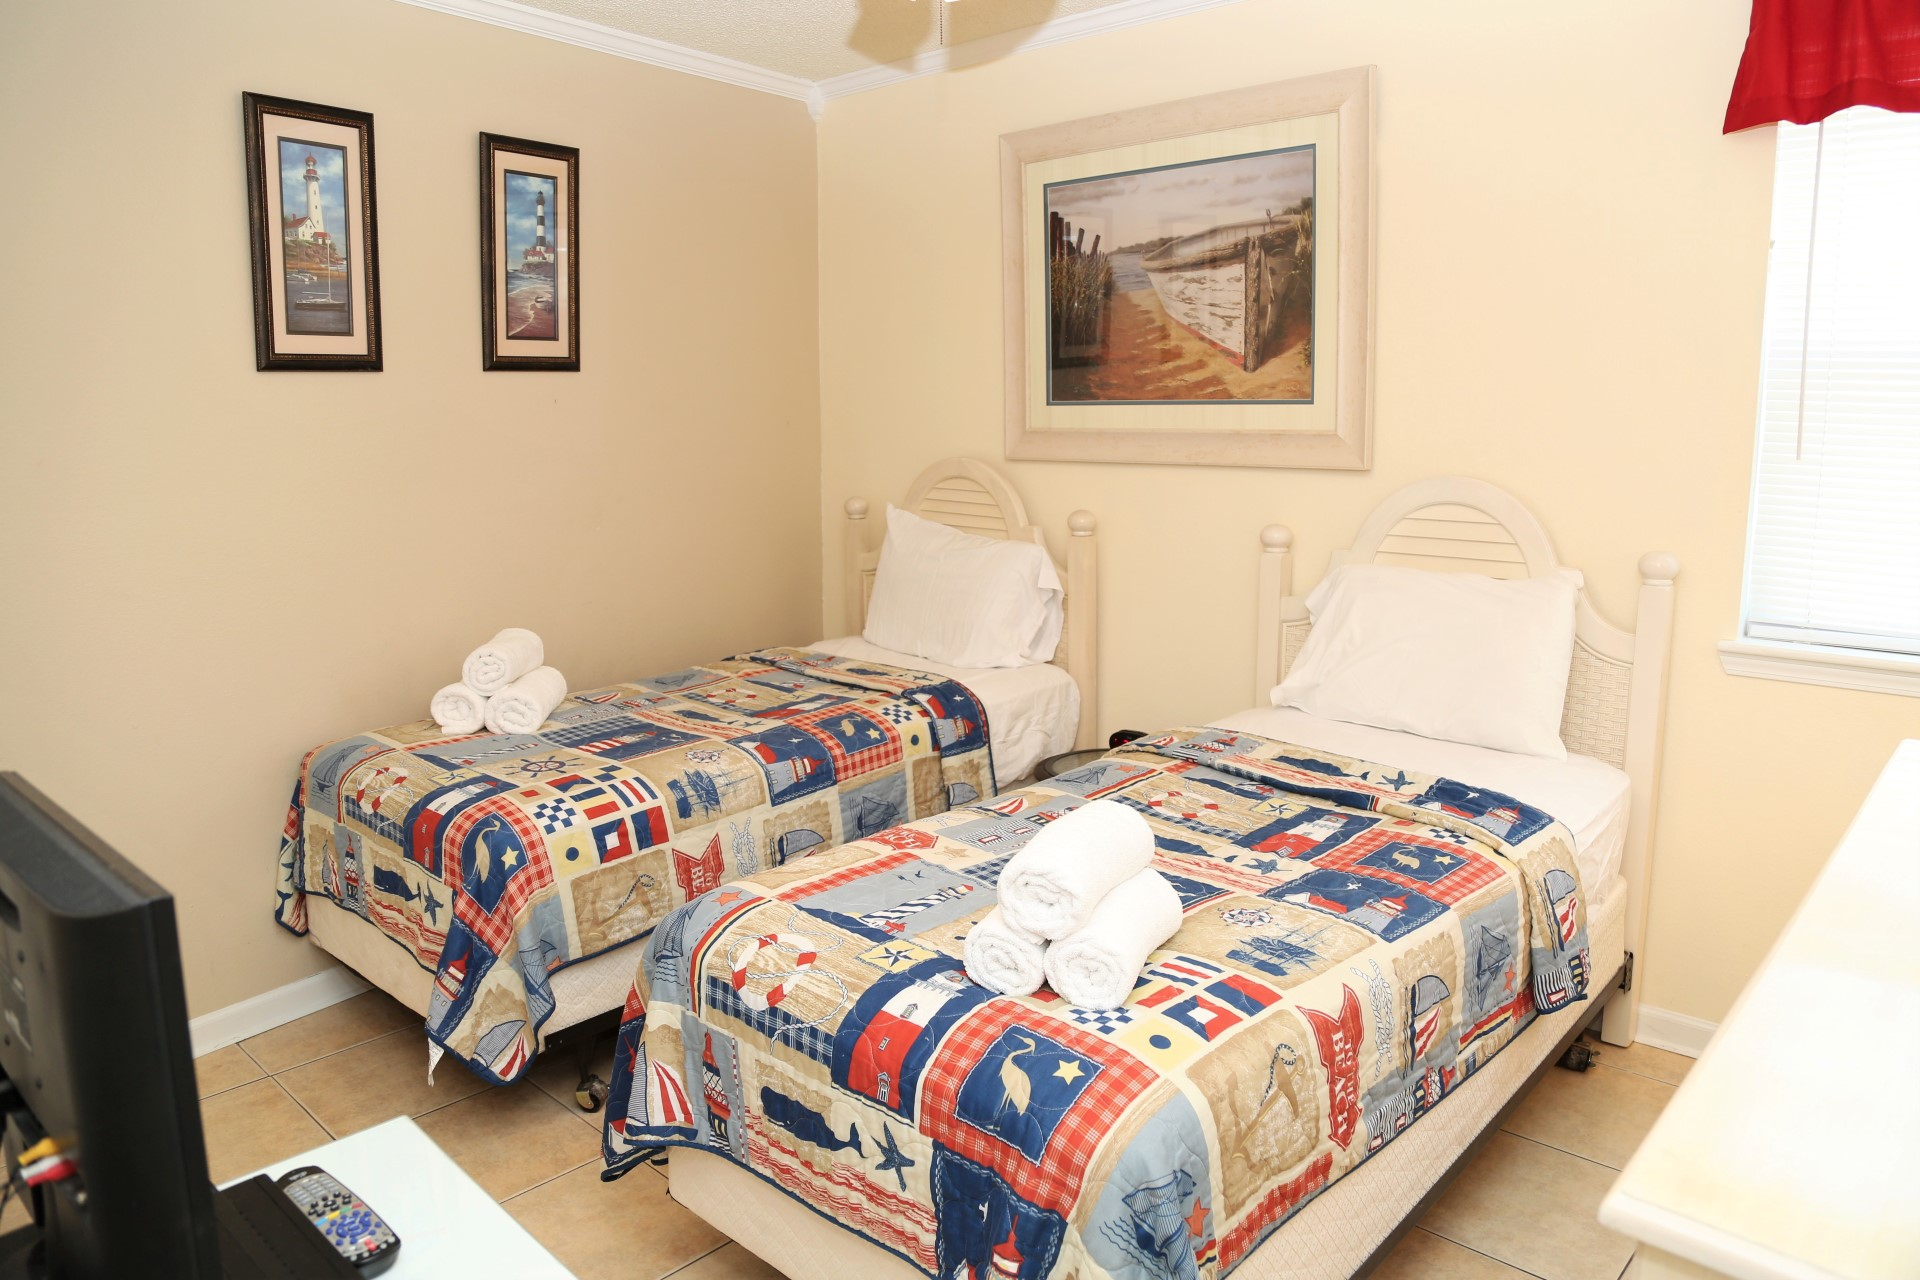 The second bedroom includes 2 twin-size beds.